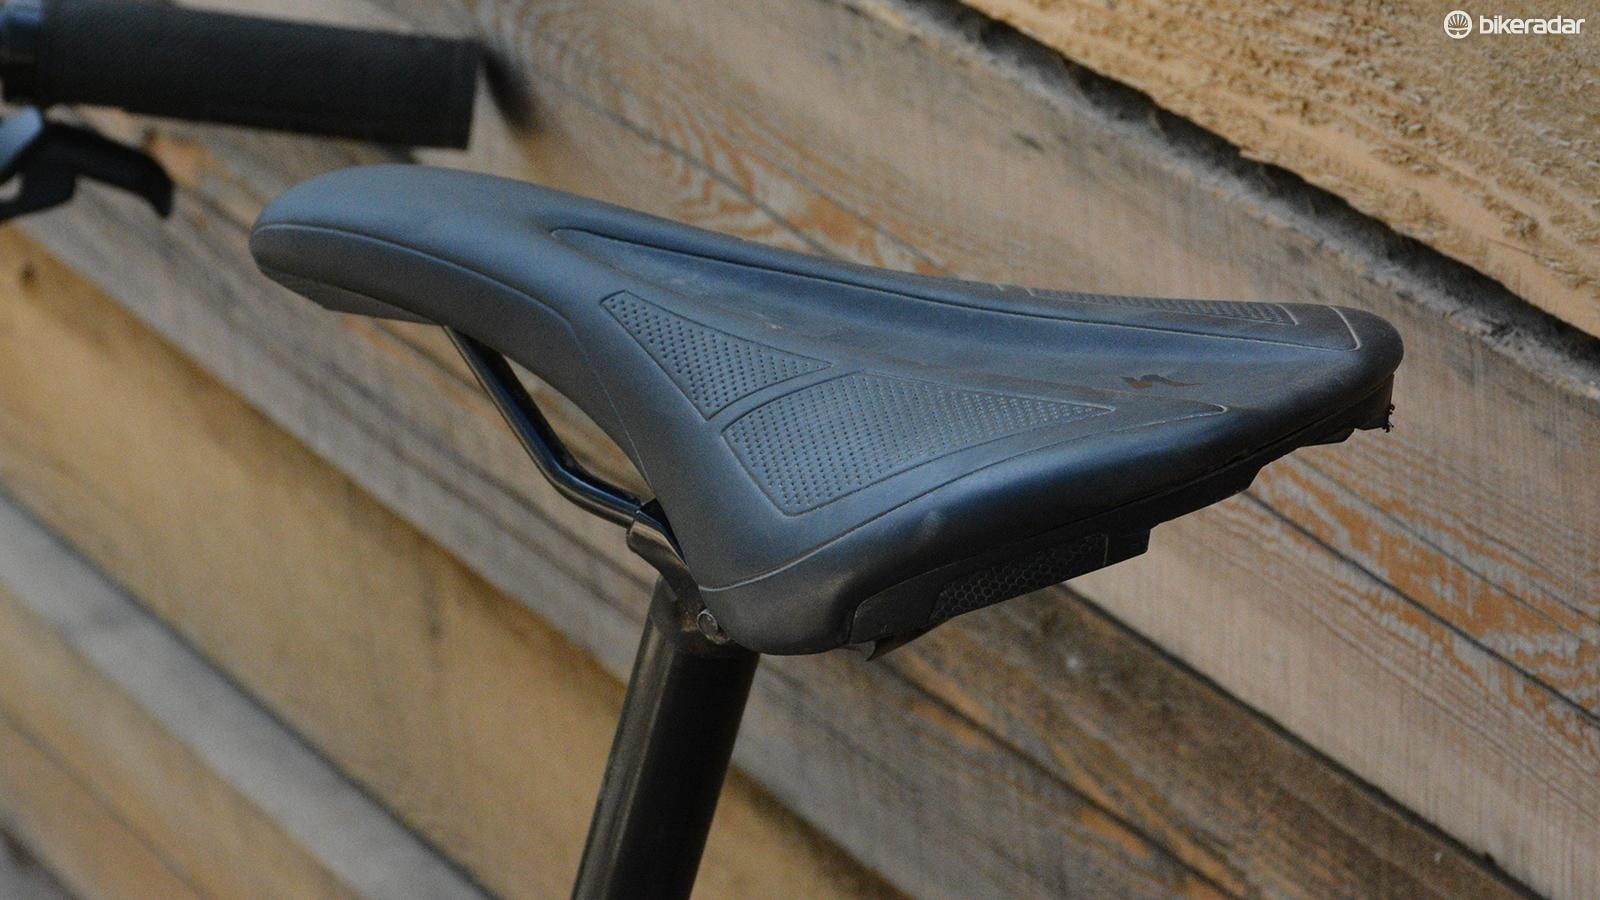 Specialized makes some of the best saddles. The Henge Comp is one I'd happily ride on other bikes